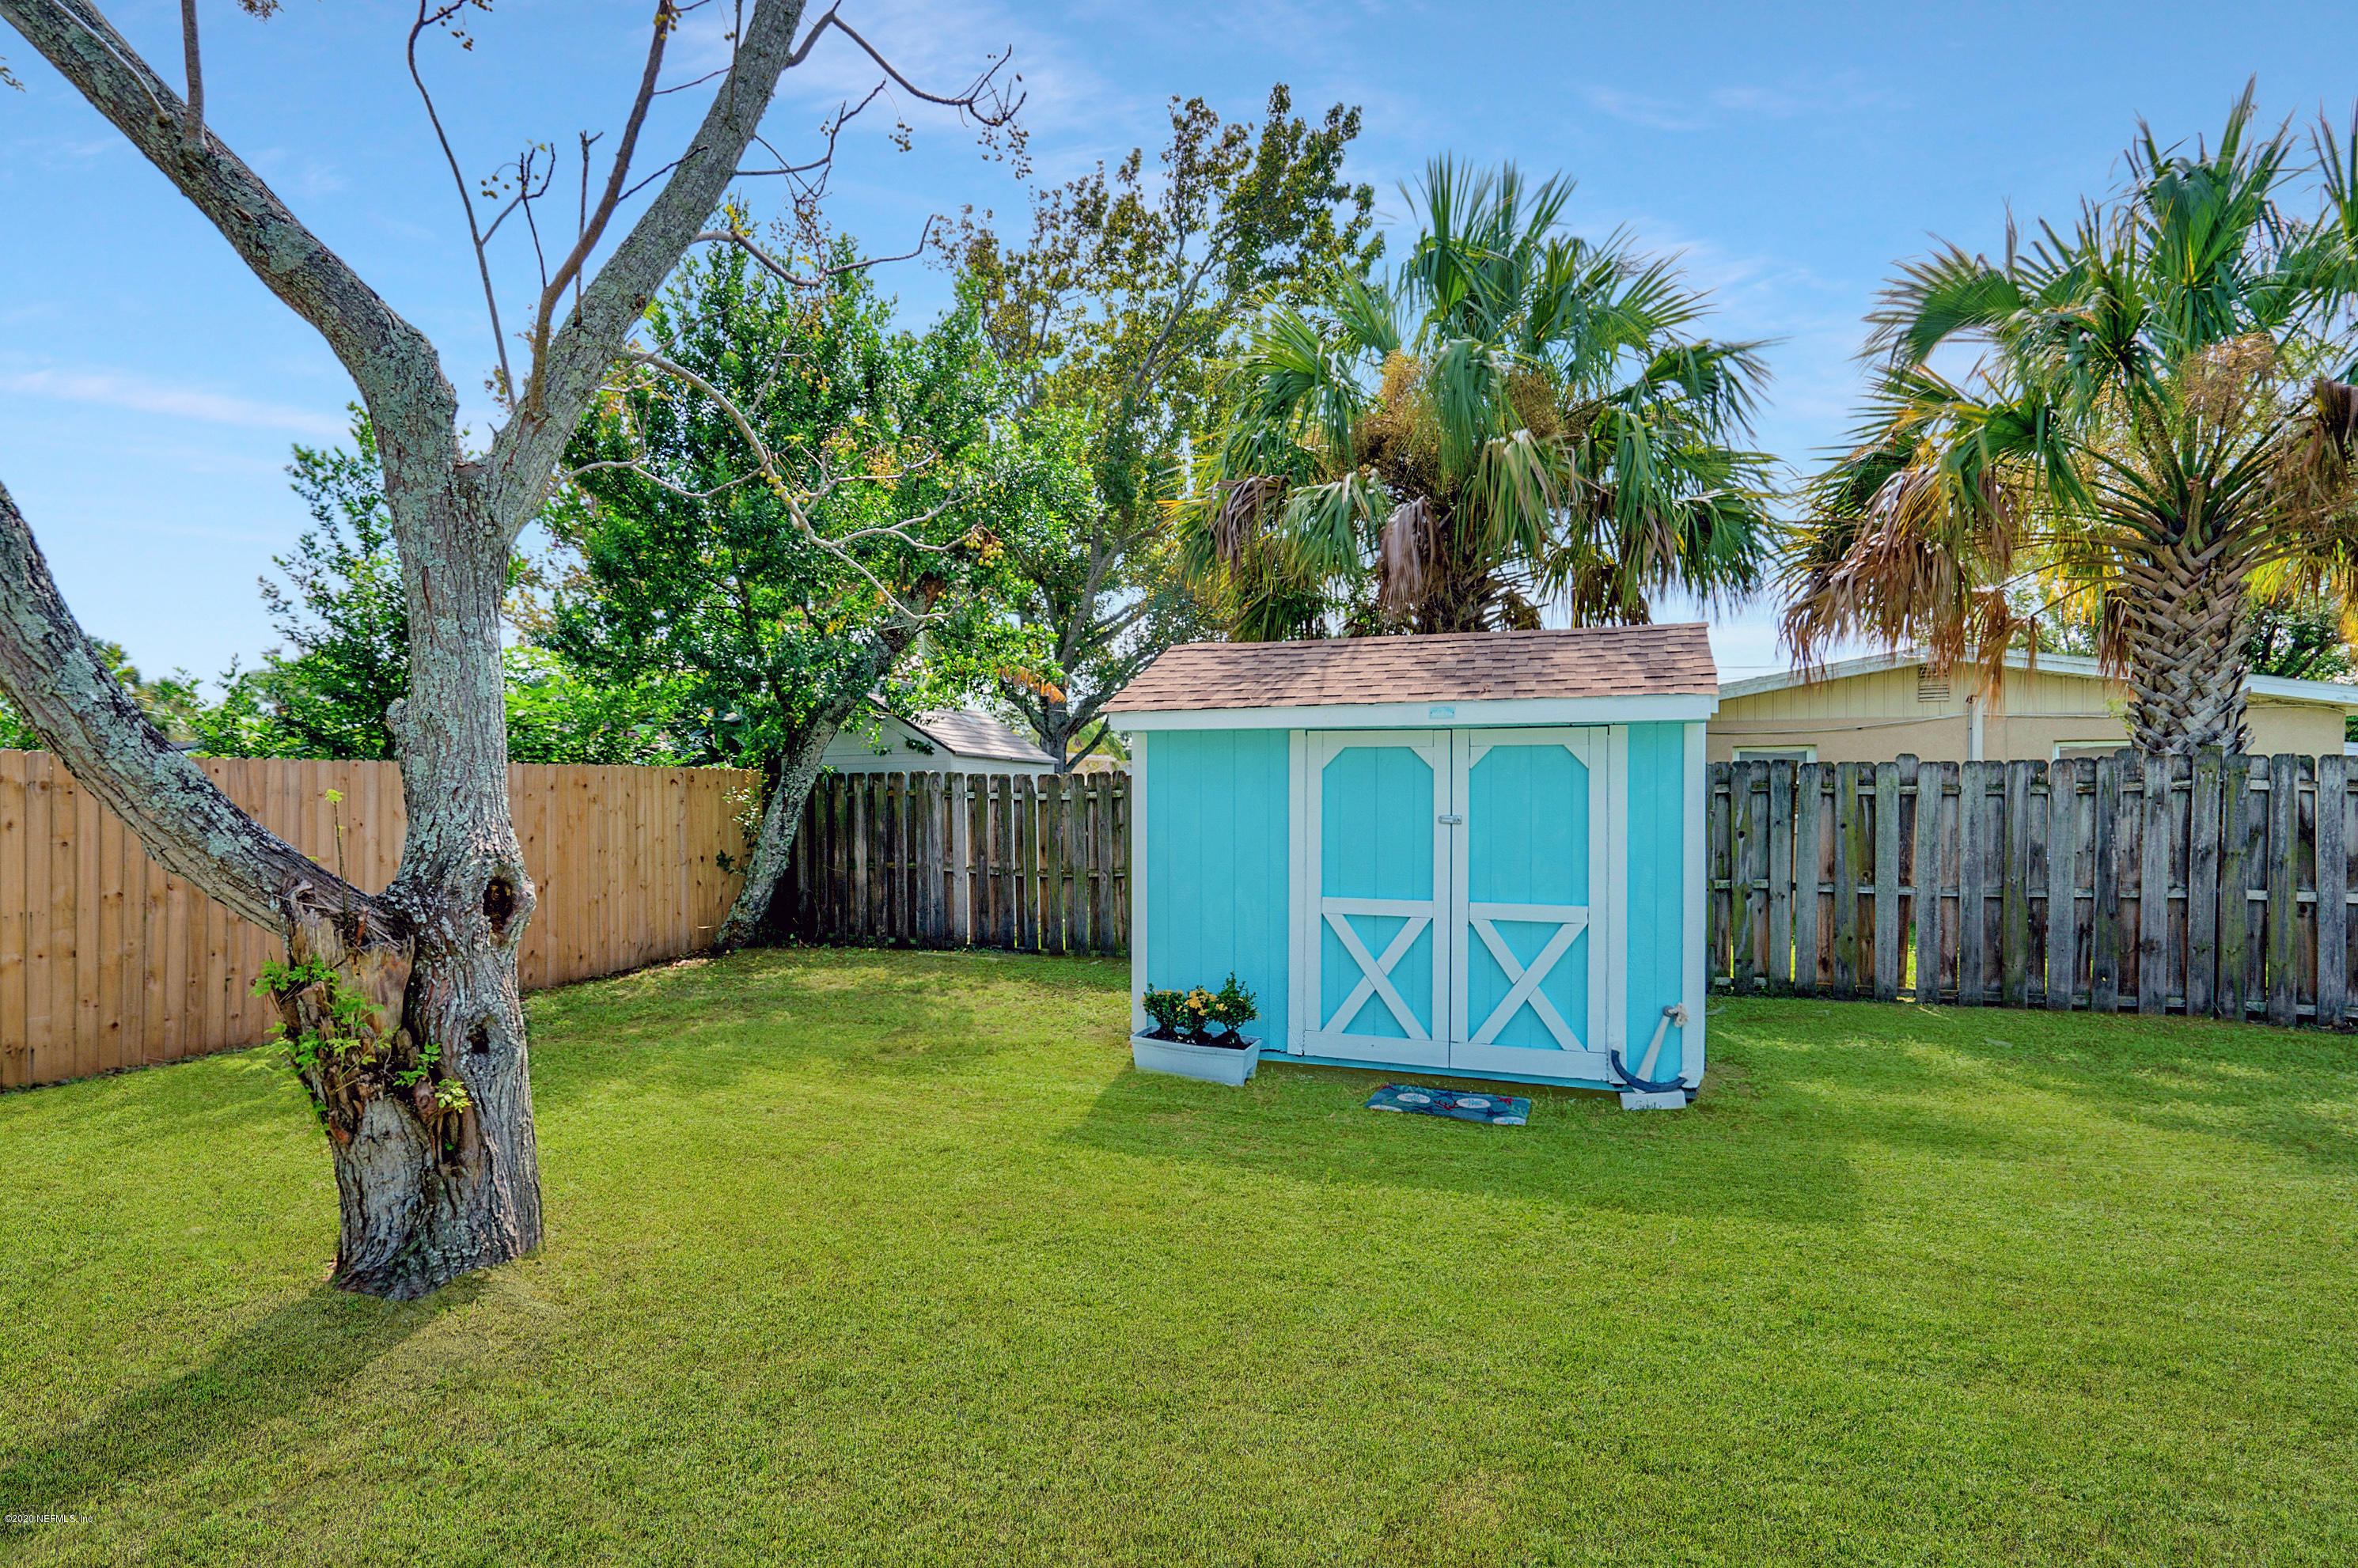 730 PLAZA, ATLANTIC BEACH, FLORIDA 32233, 3 Bedrooms Bedrooms, ,2 BathroomsBathrooms,Residential,For sale,PLAZA,1075080